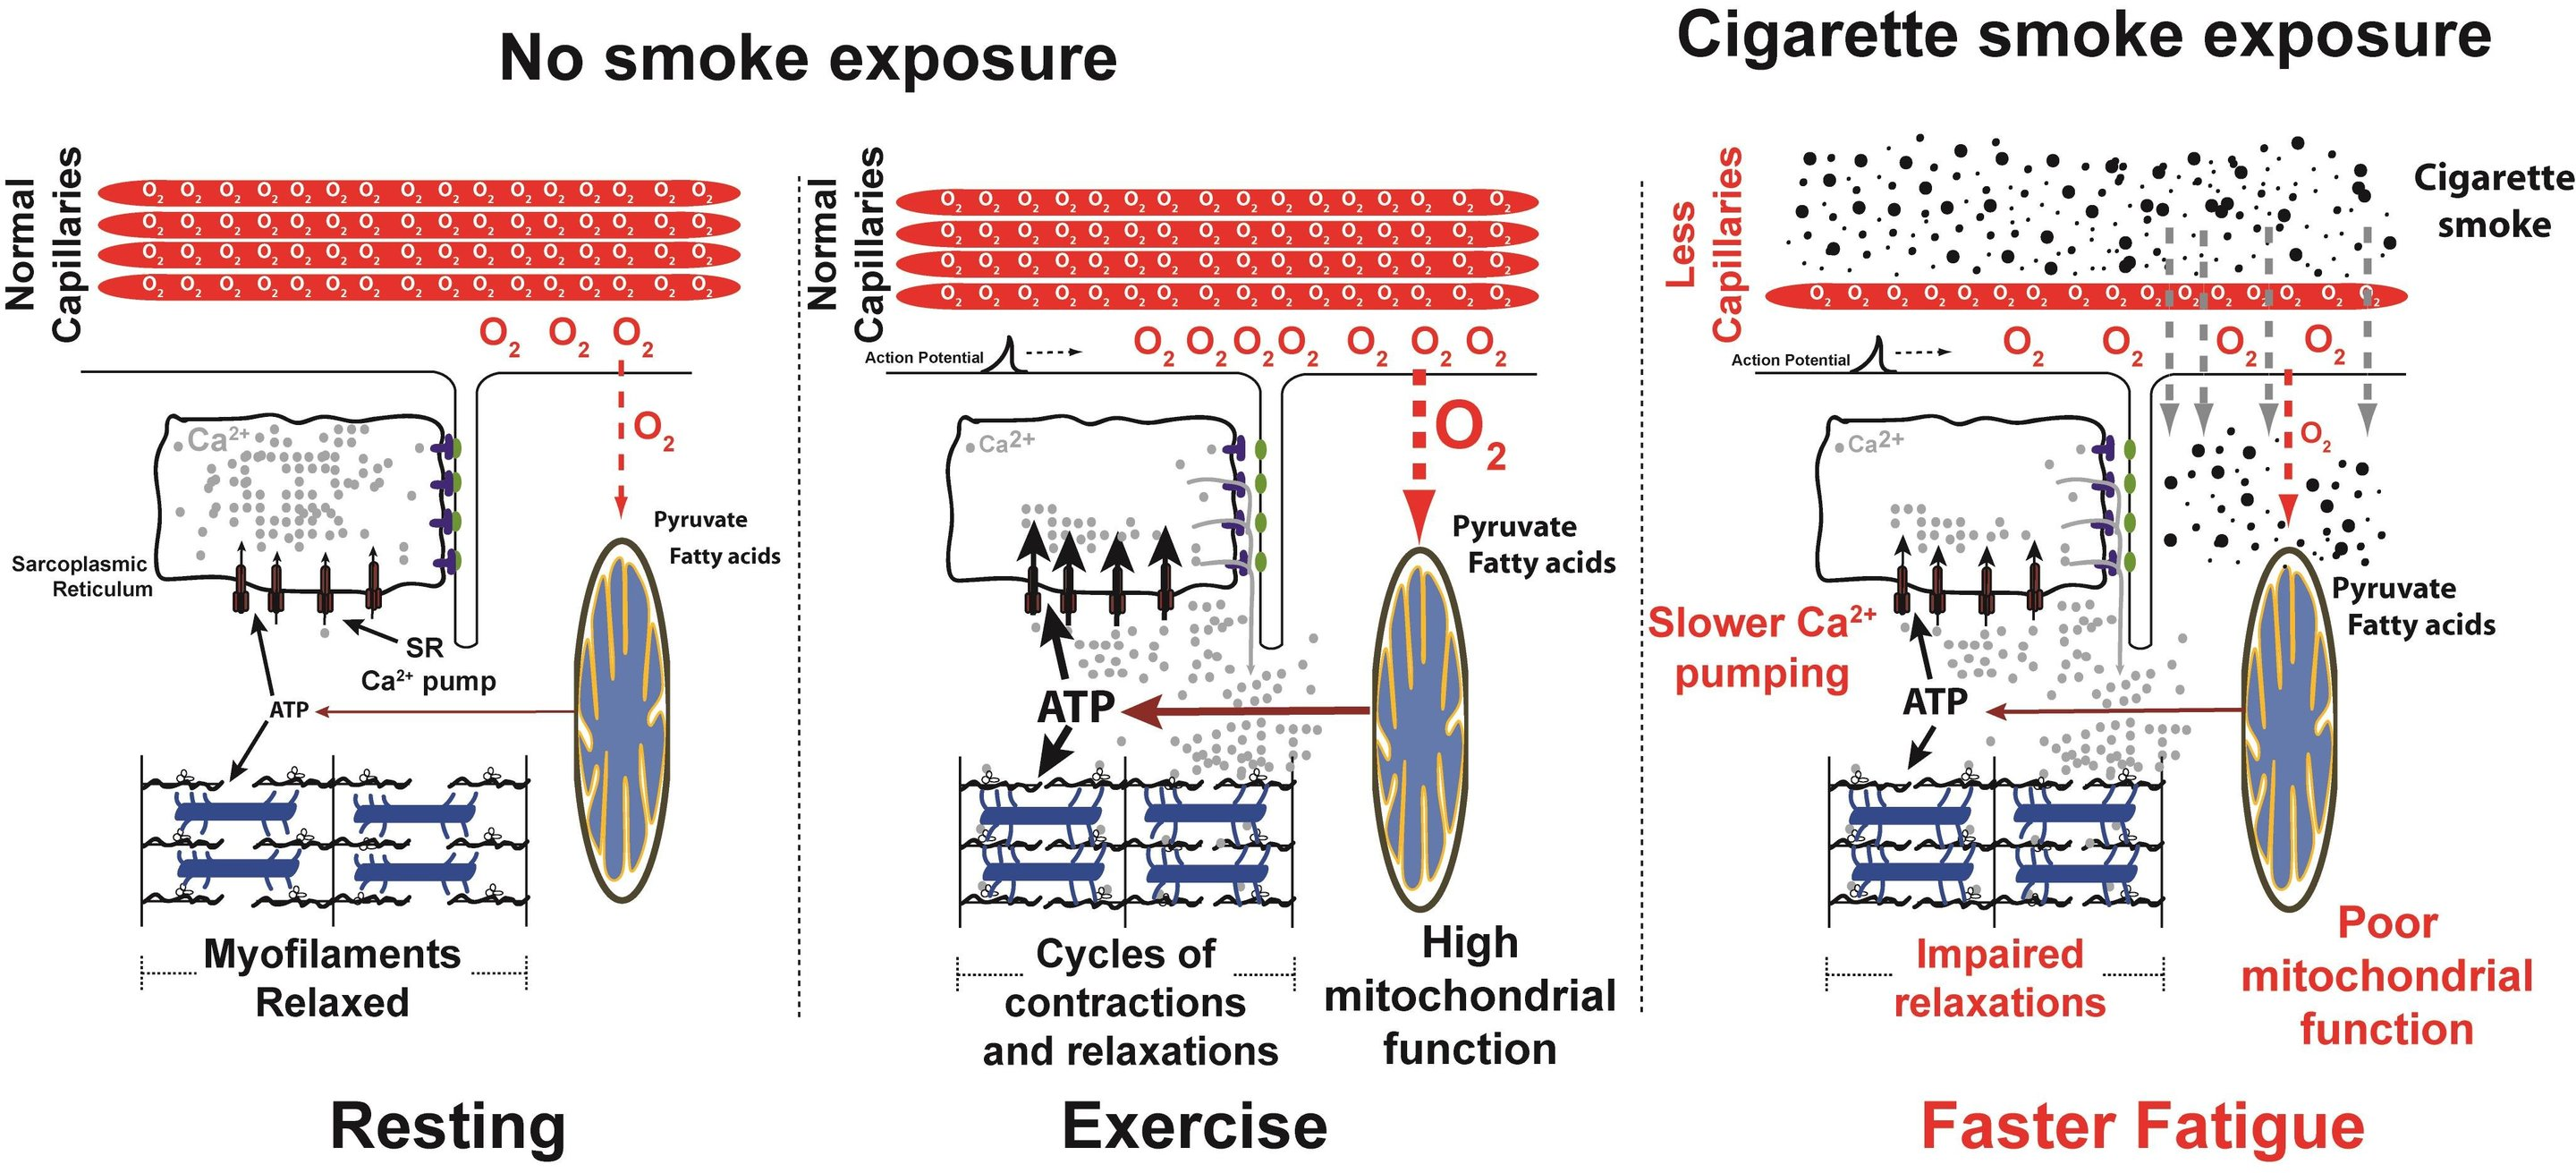 Cigarette Smoke Directly Damages Muscles In The Body